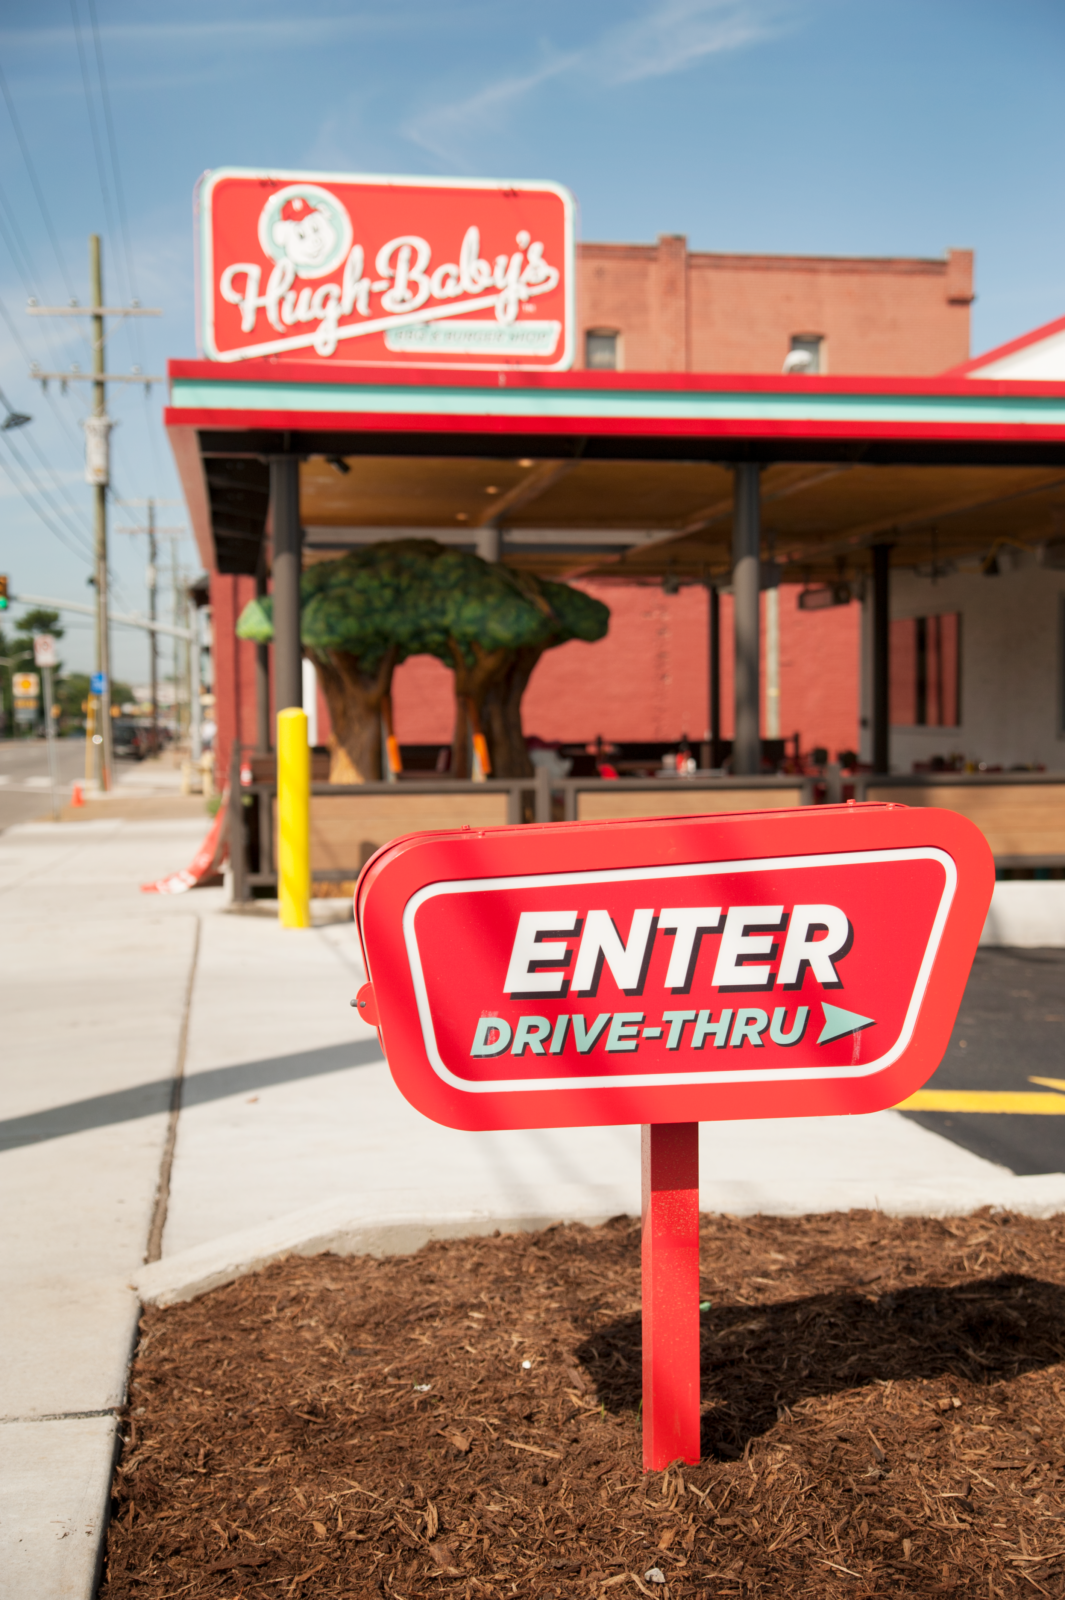 The drive through enter sign with Hugh Baby's restaurant in the back.